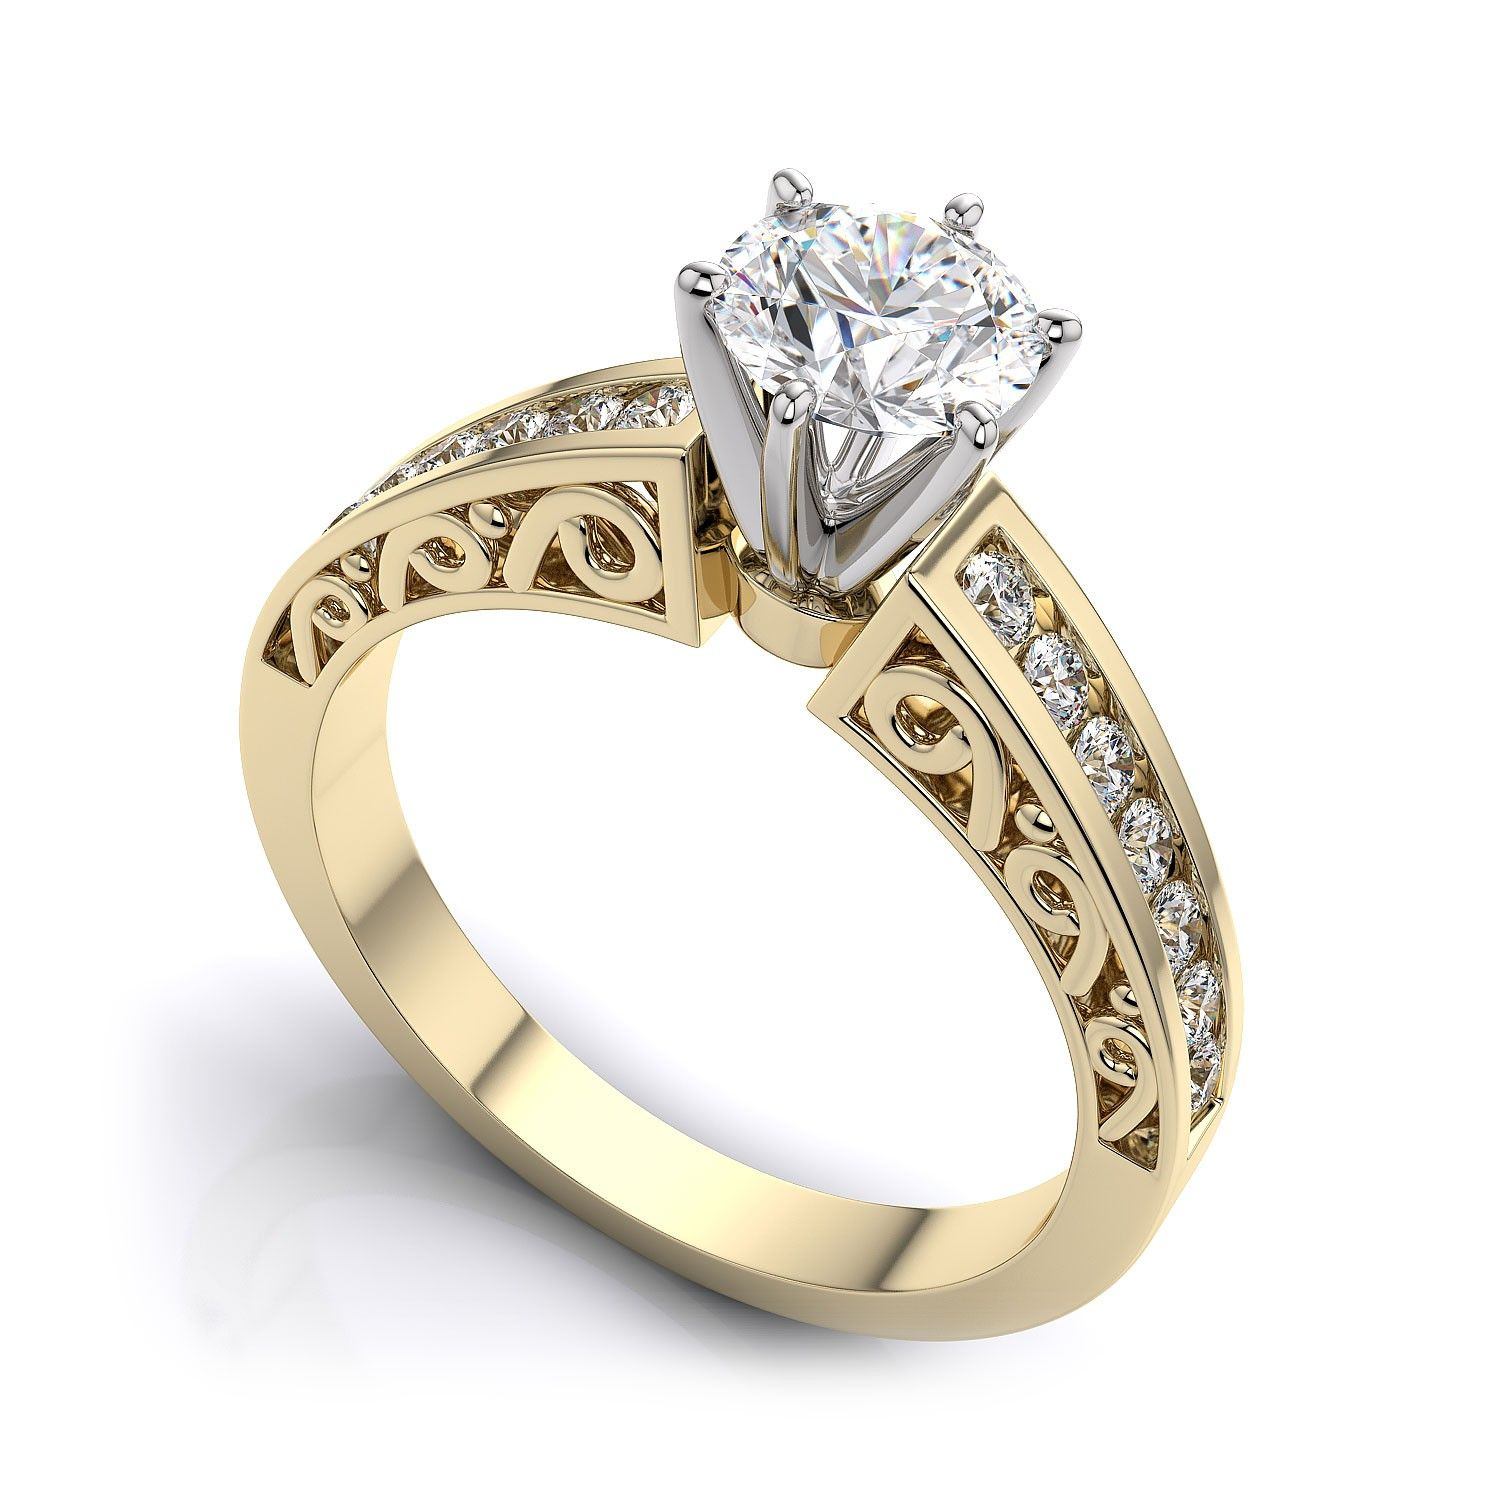 com for luxury registaz wedding rings women gold amazing yellow